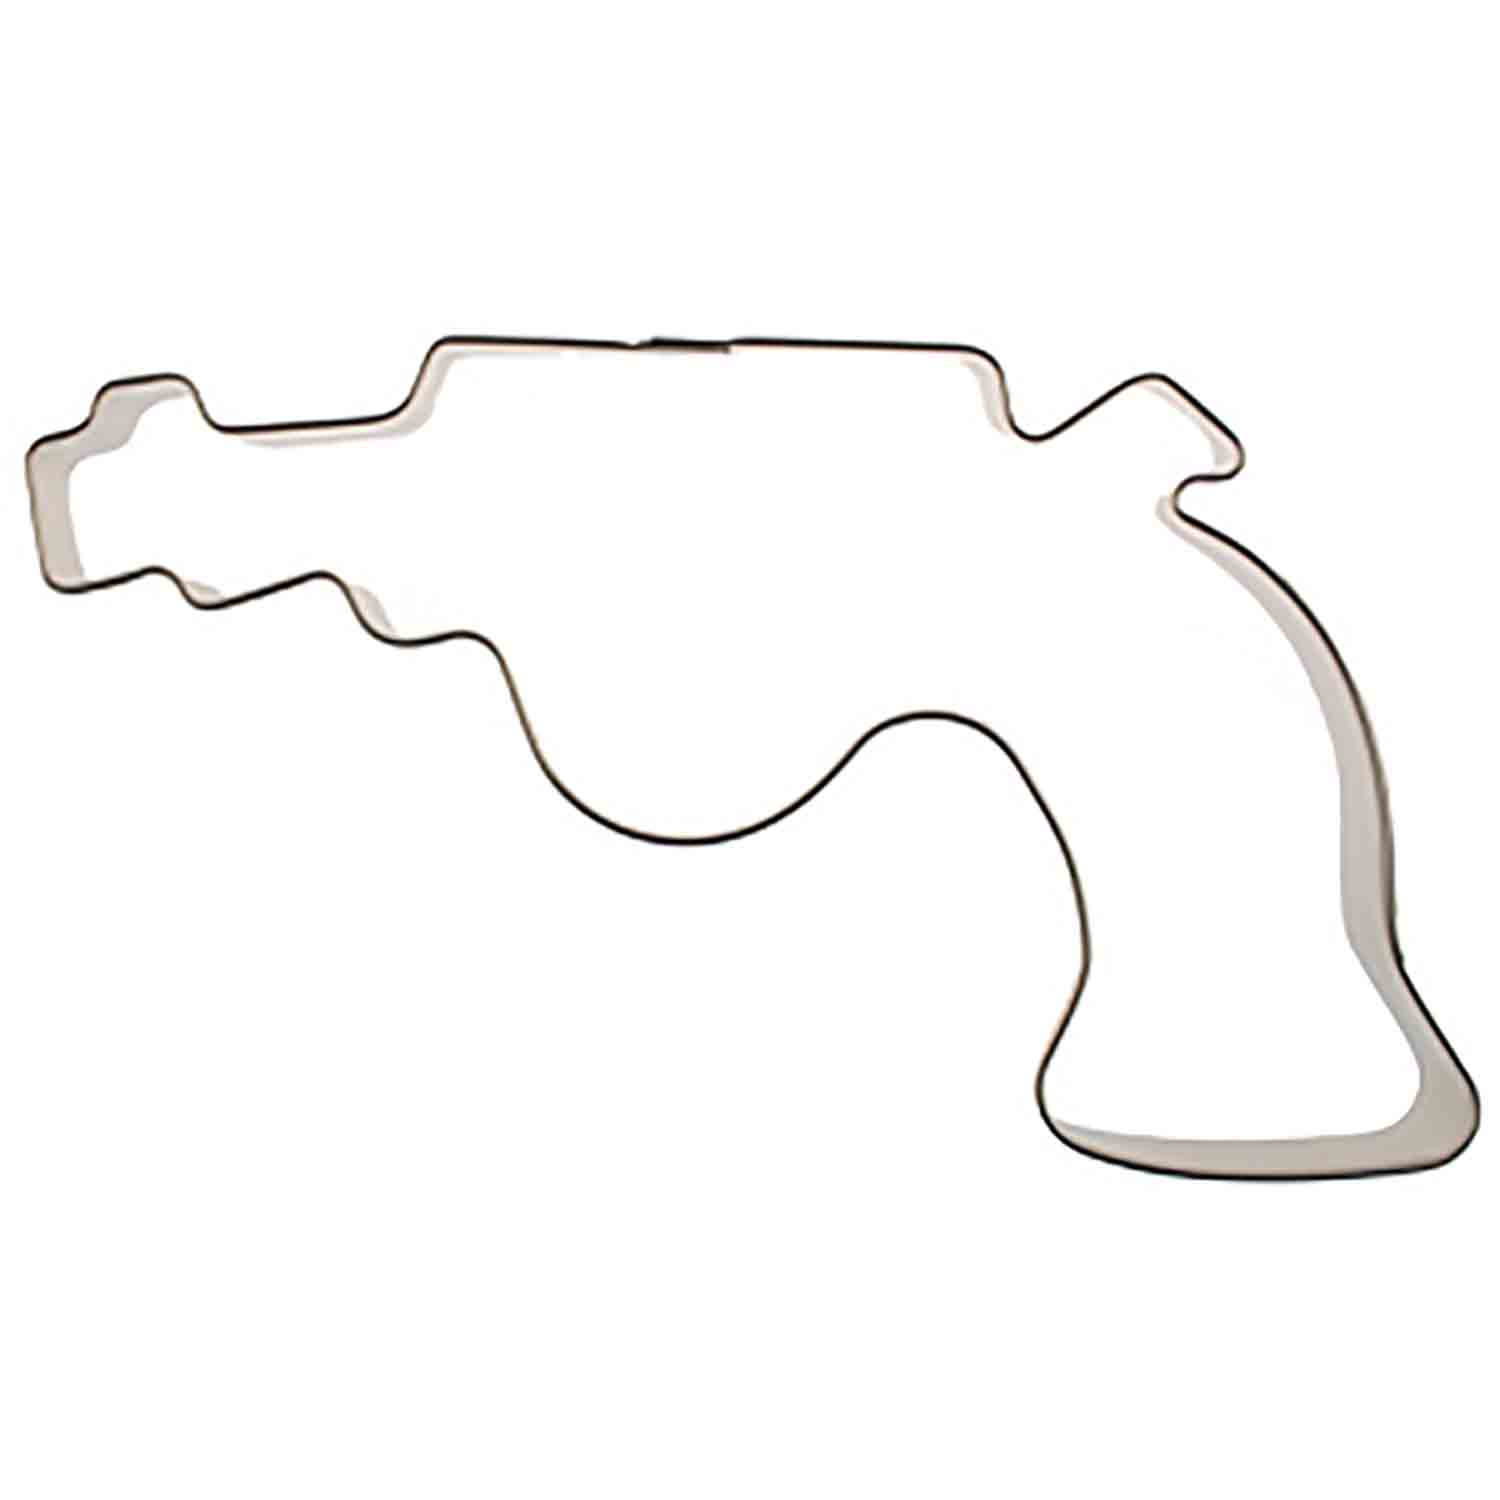 Gun/Revolver Cookie Cutter